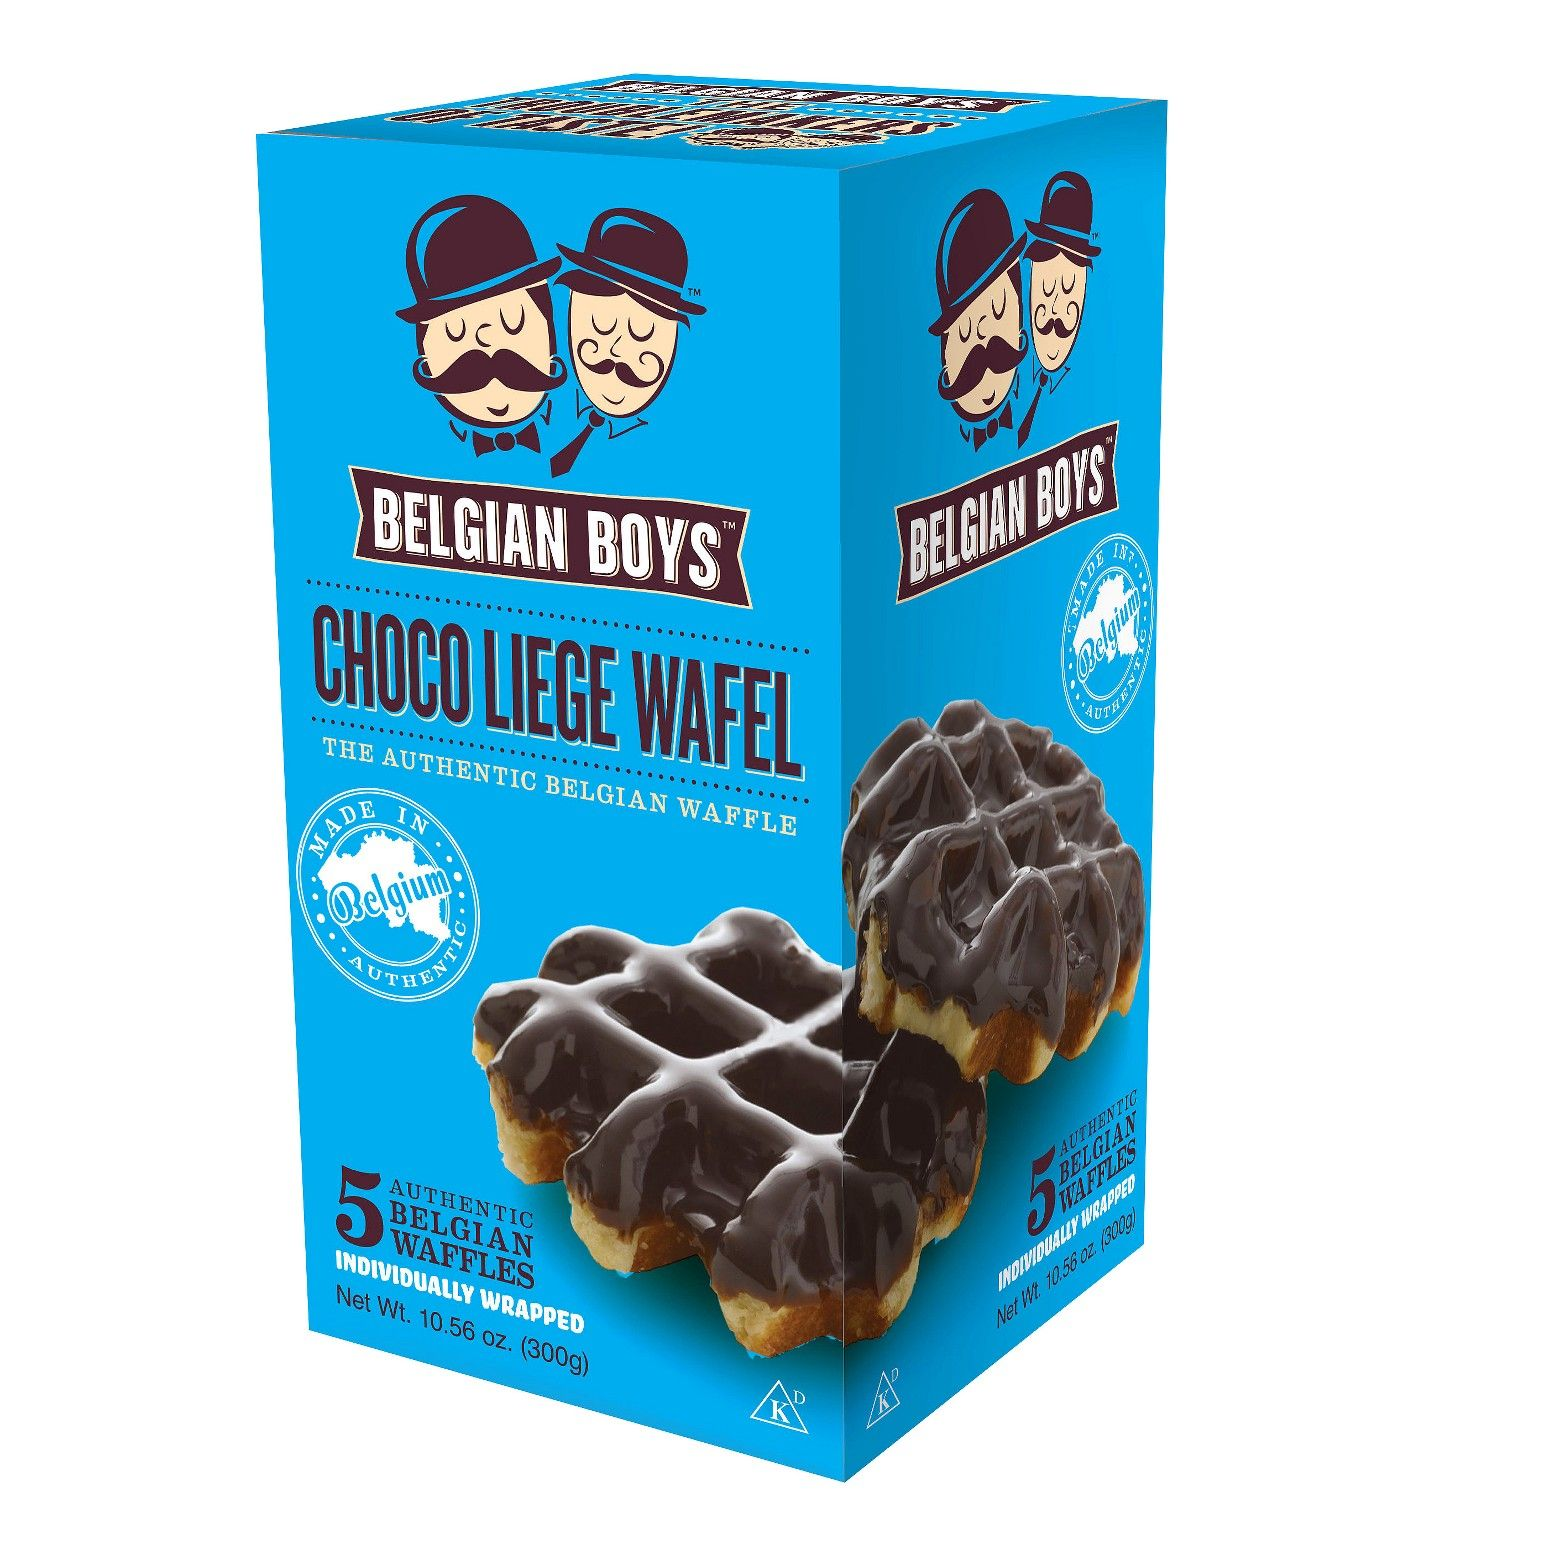 Belgian Boys Choco Liege Waffles are made from fresh dough and glazed with caramelized sugar—and then covered with chocolate. These Belgian Boys waffles can be enjoyed on the go or warmed up and topped with a scoop of ice cream.